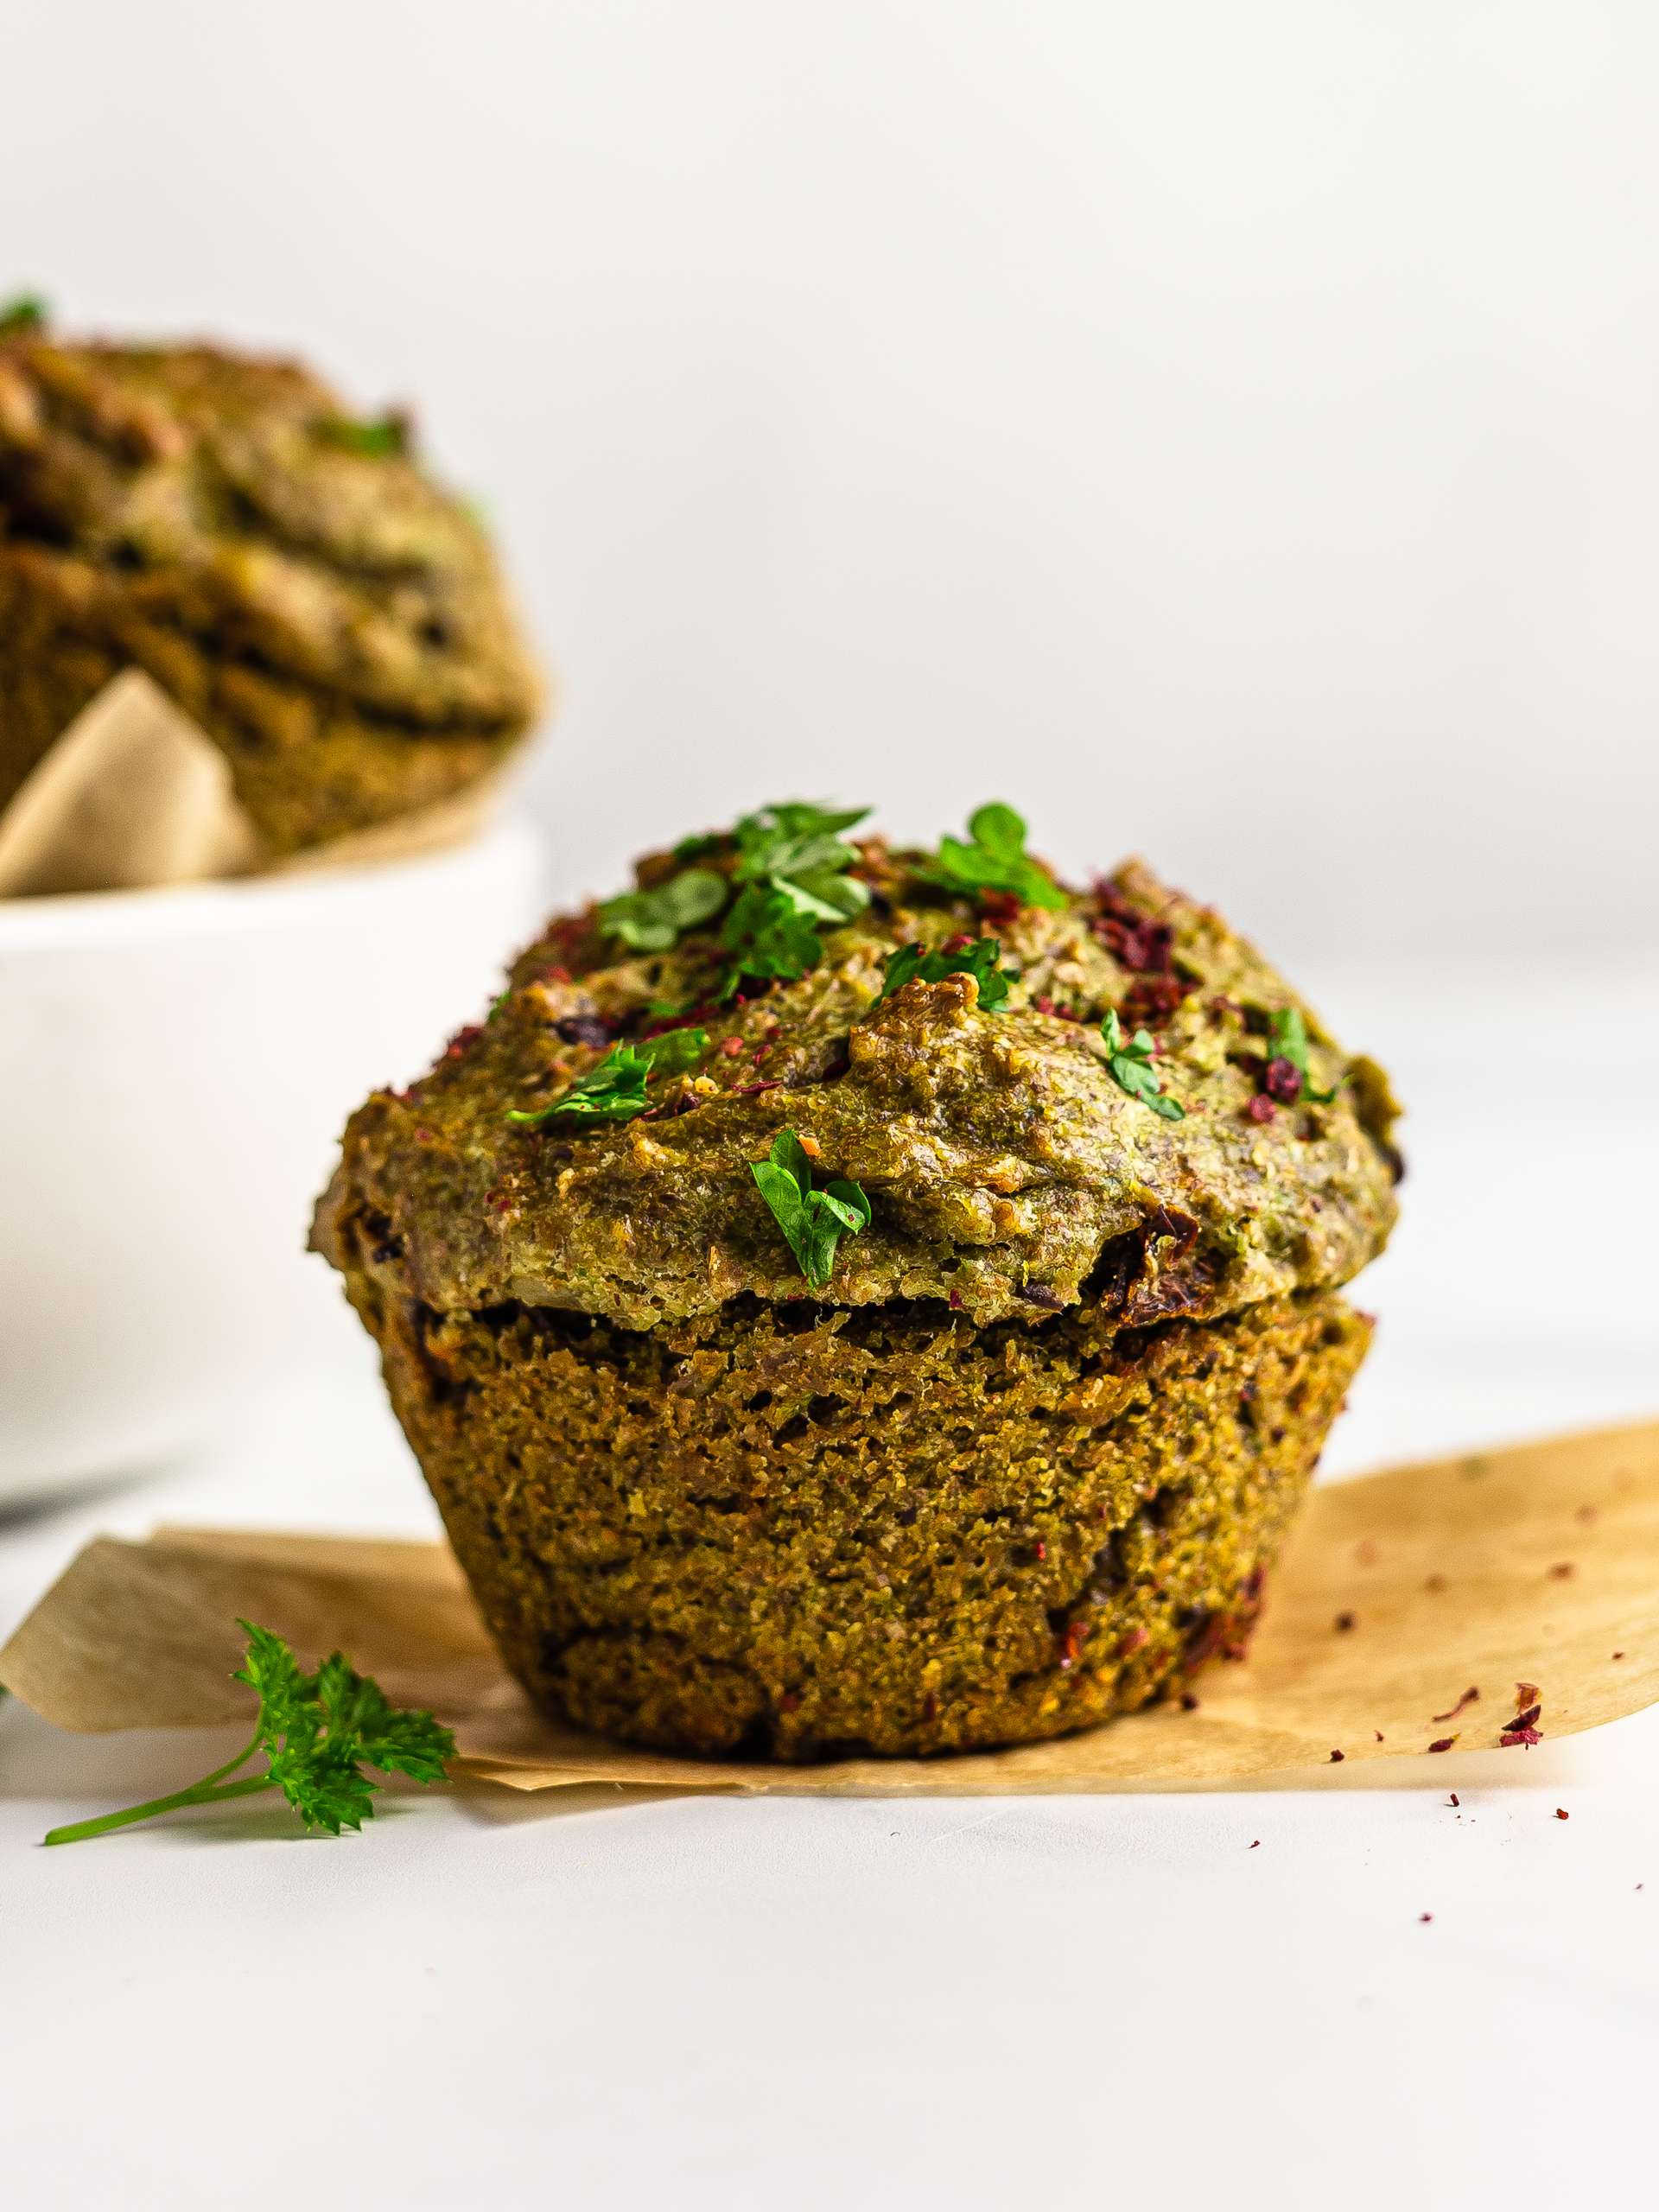 Savoury Vegan Muffins with Pesto Thumbnail